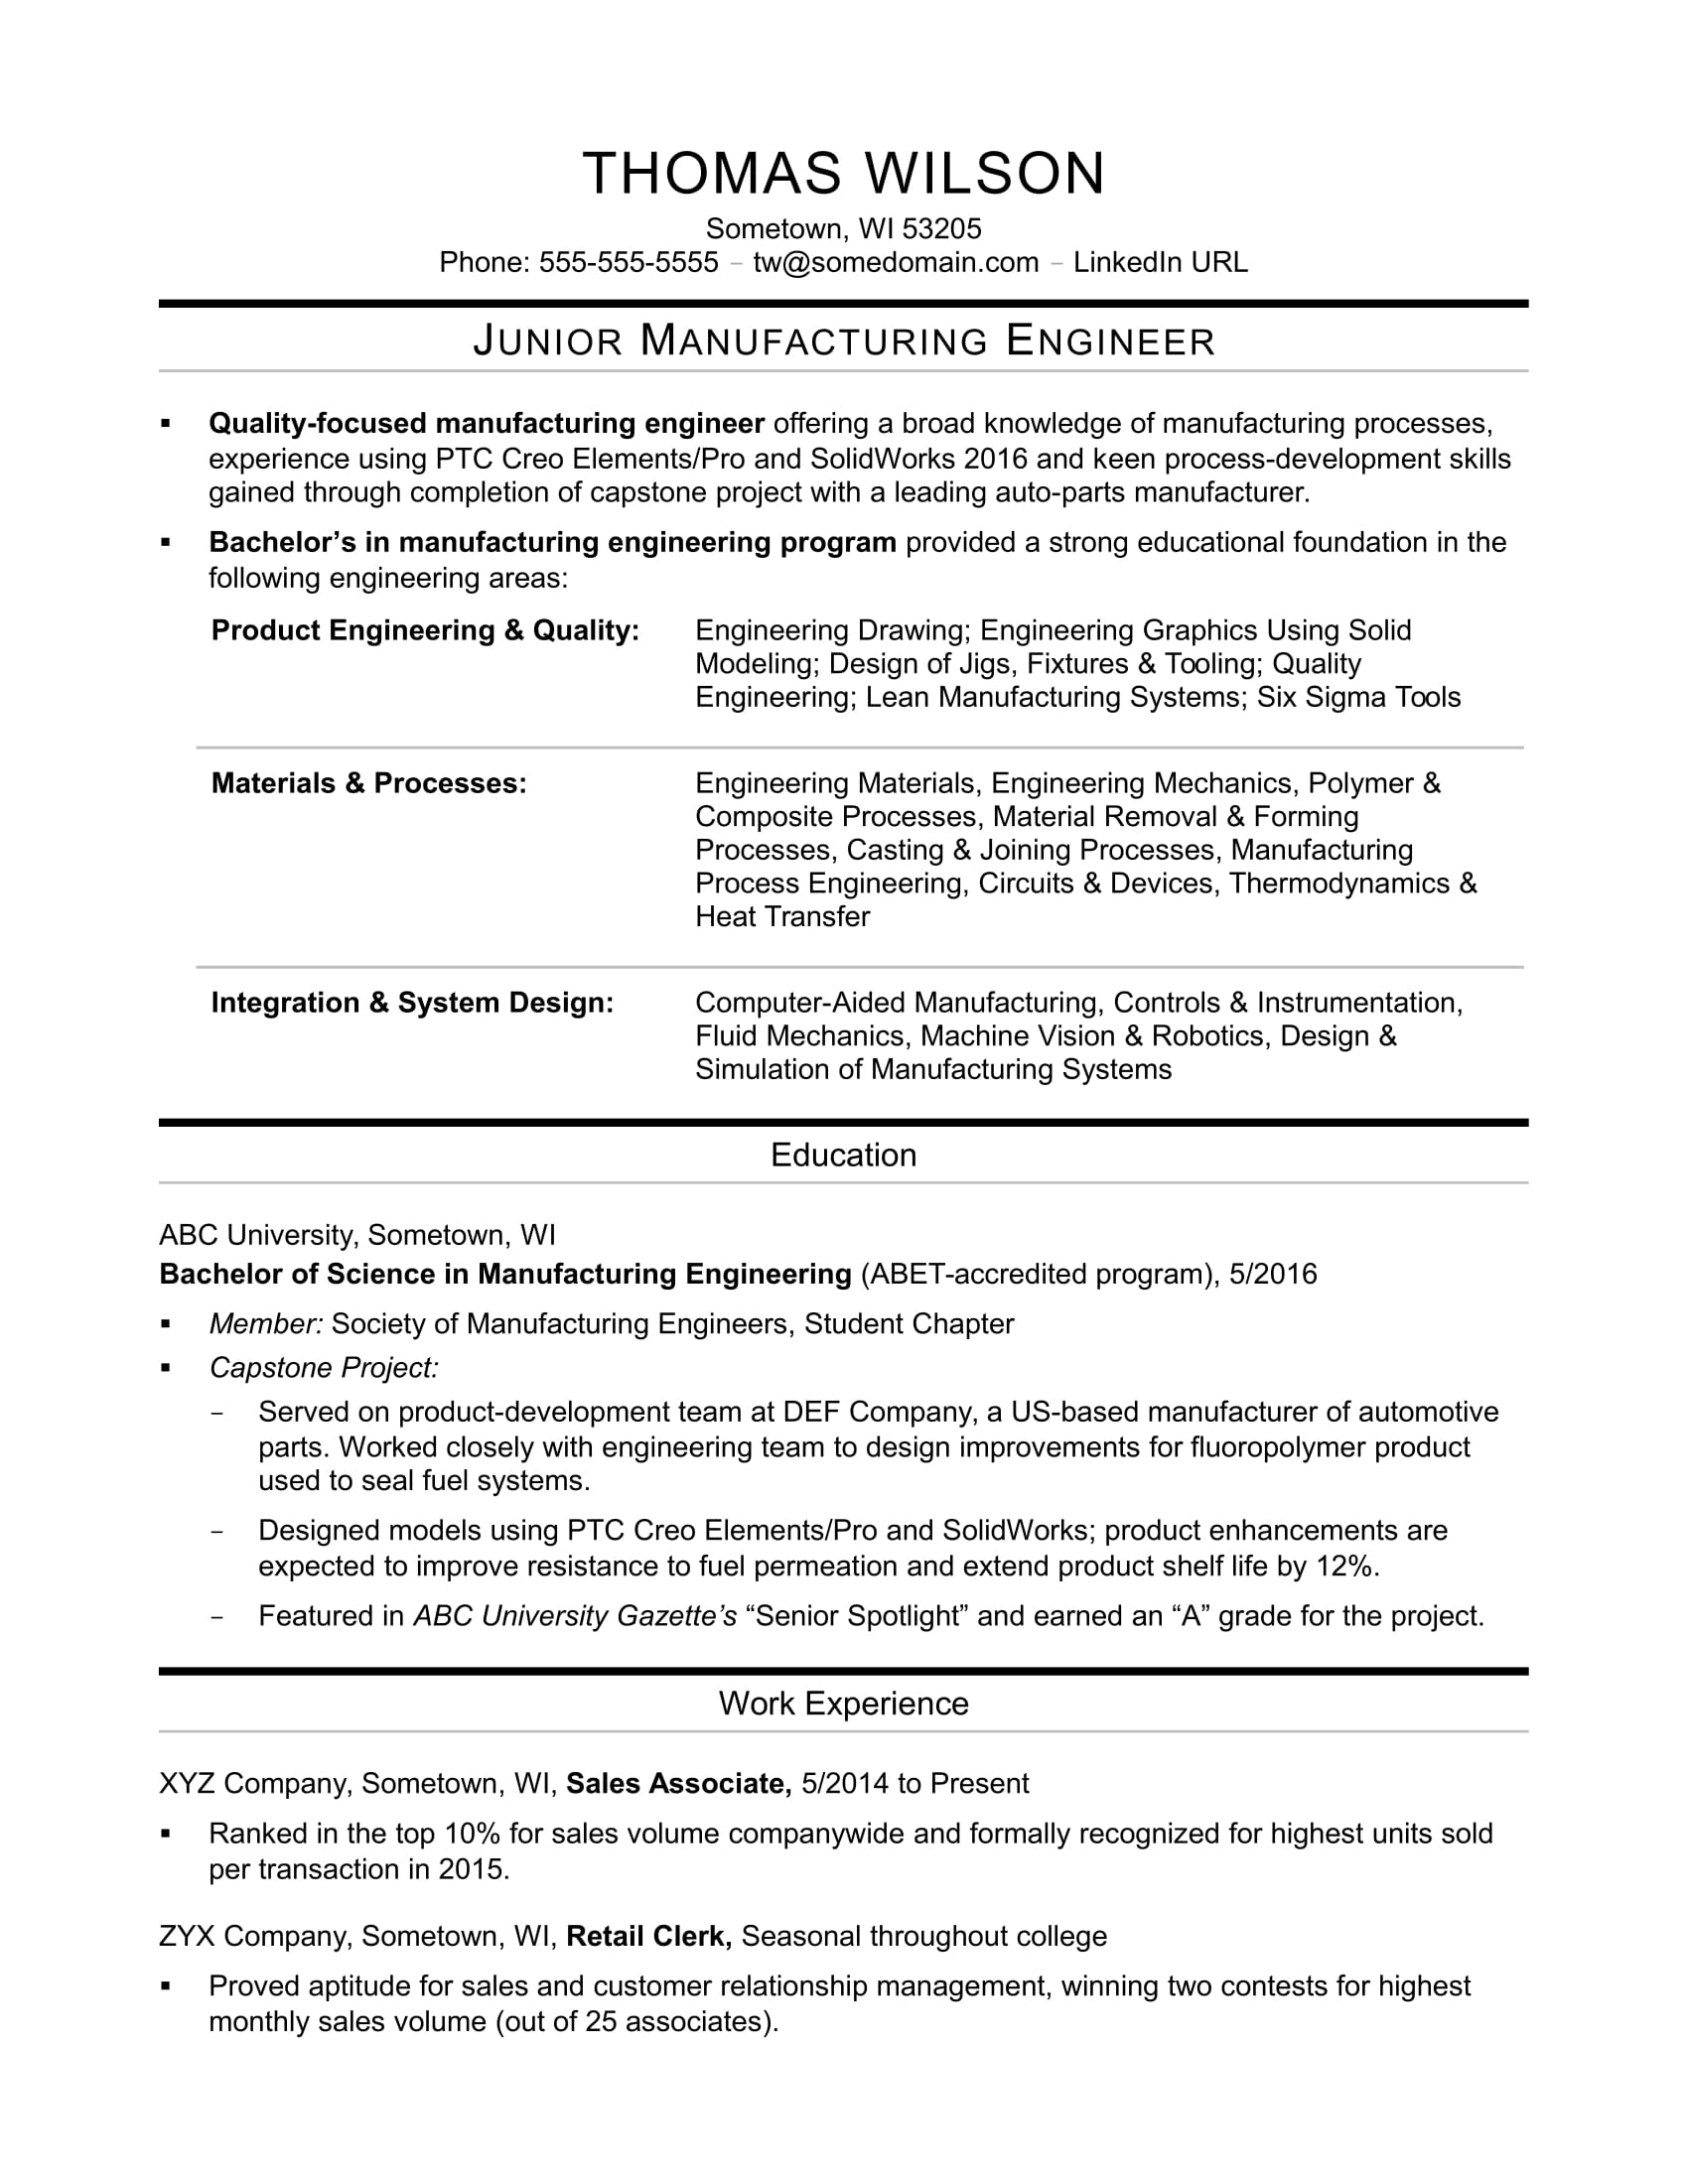 sample resume for an entry level manufacturing engineer - Entry Level Engineering Resume